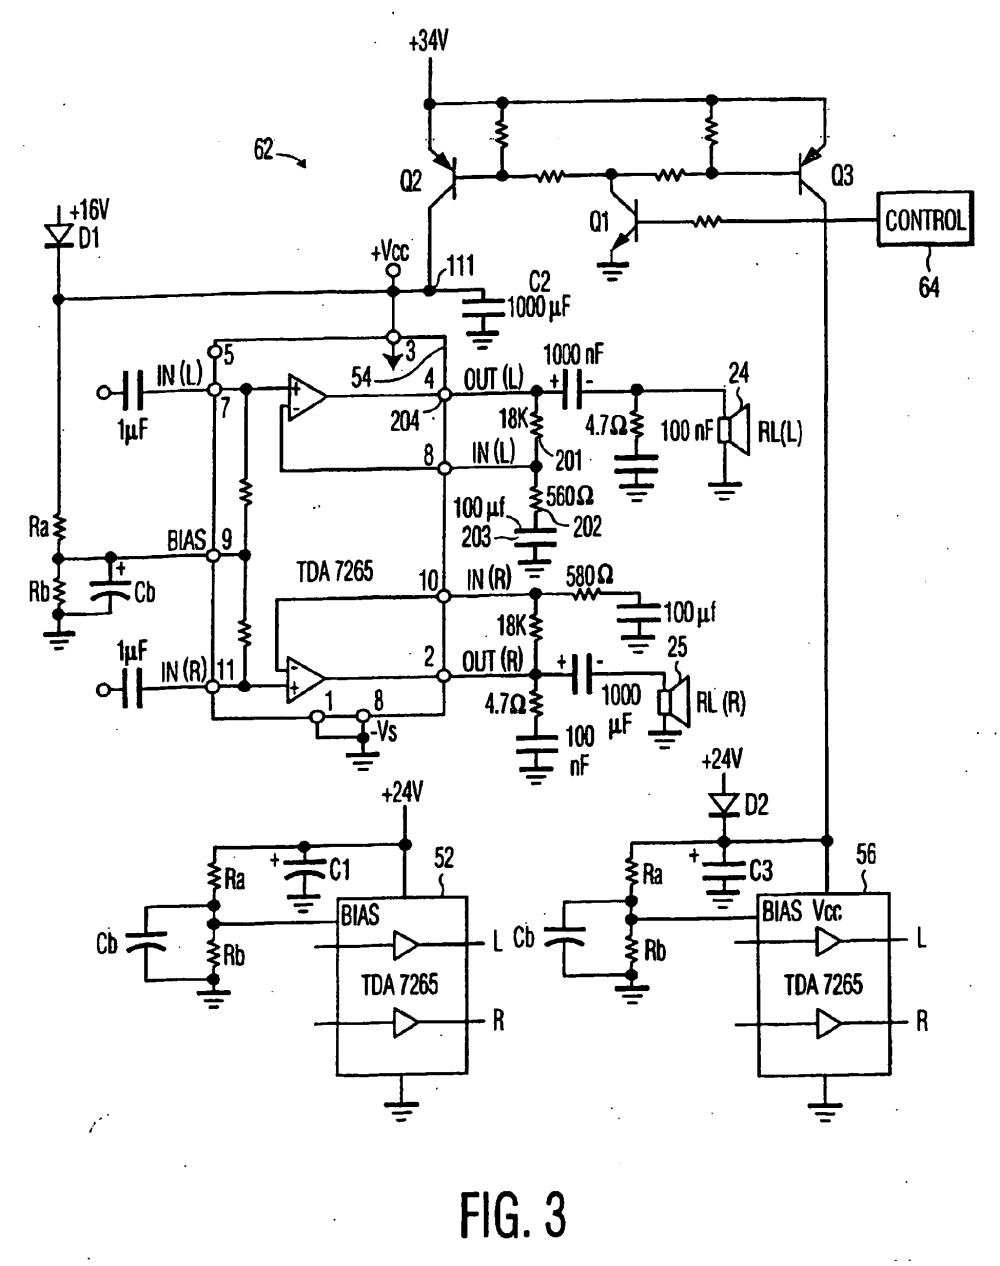 medium resolution of wiring home for surround sound moreover patent ep1241922b1 audio home surround sound wiring diagram electric mx